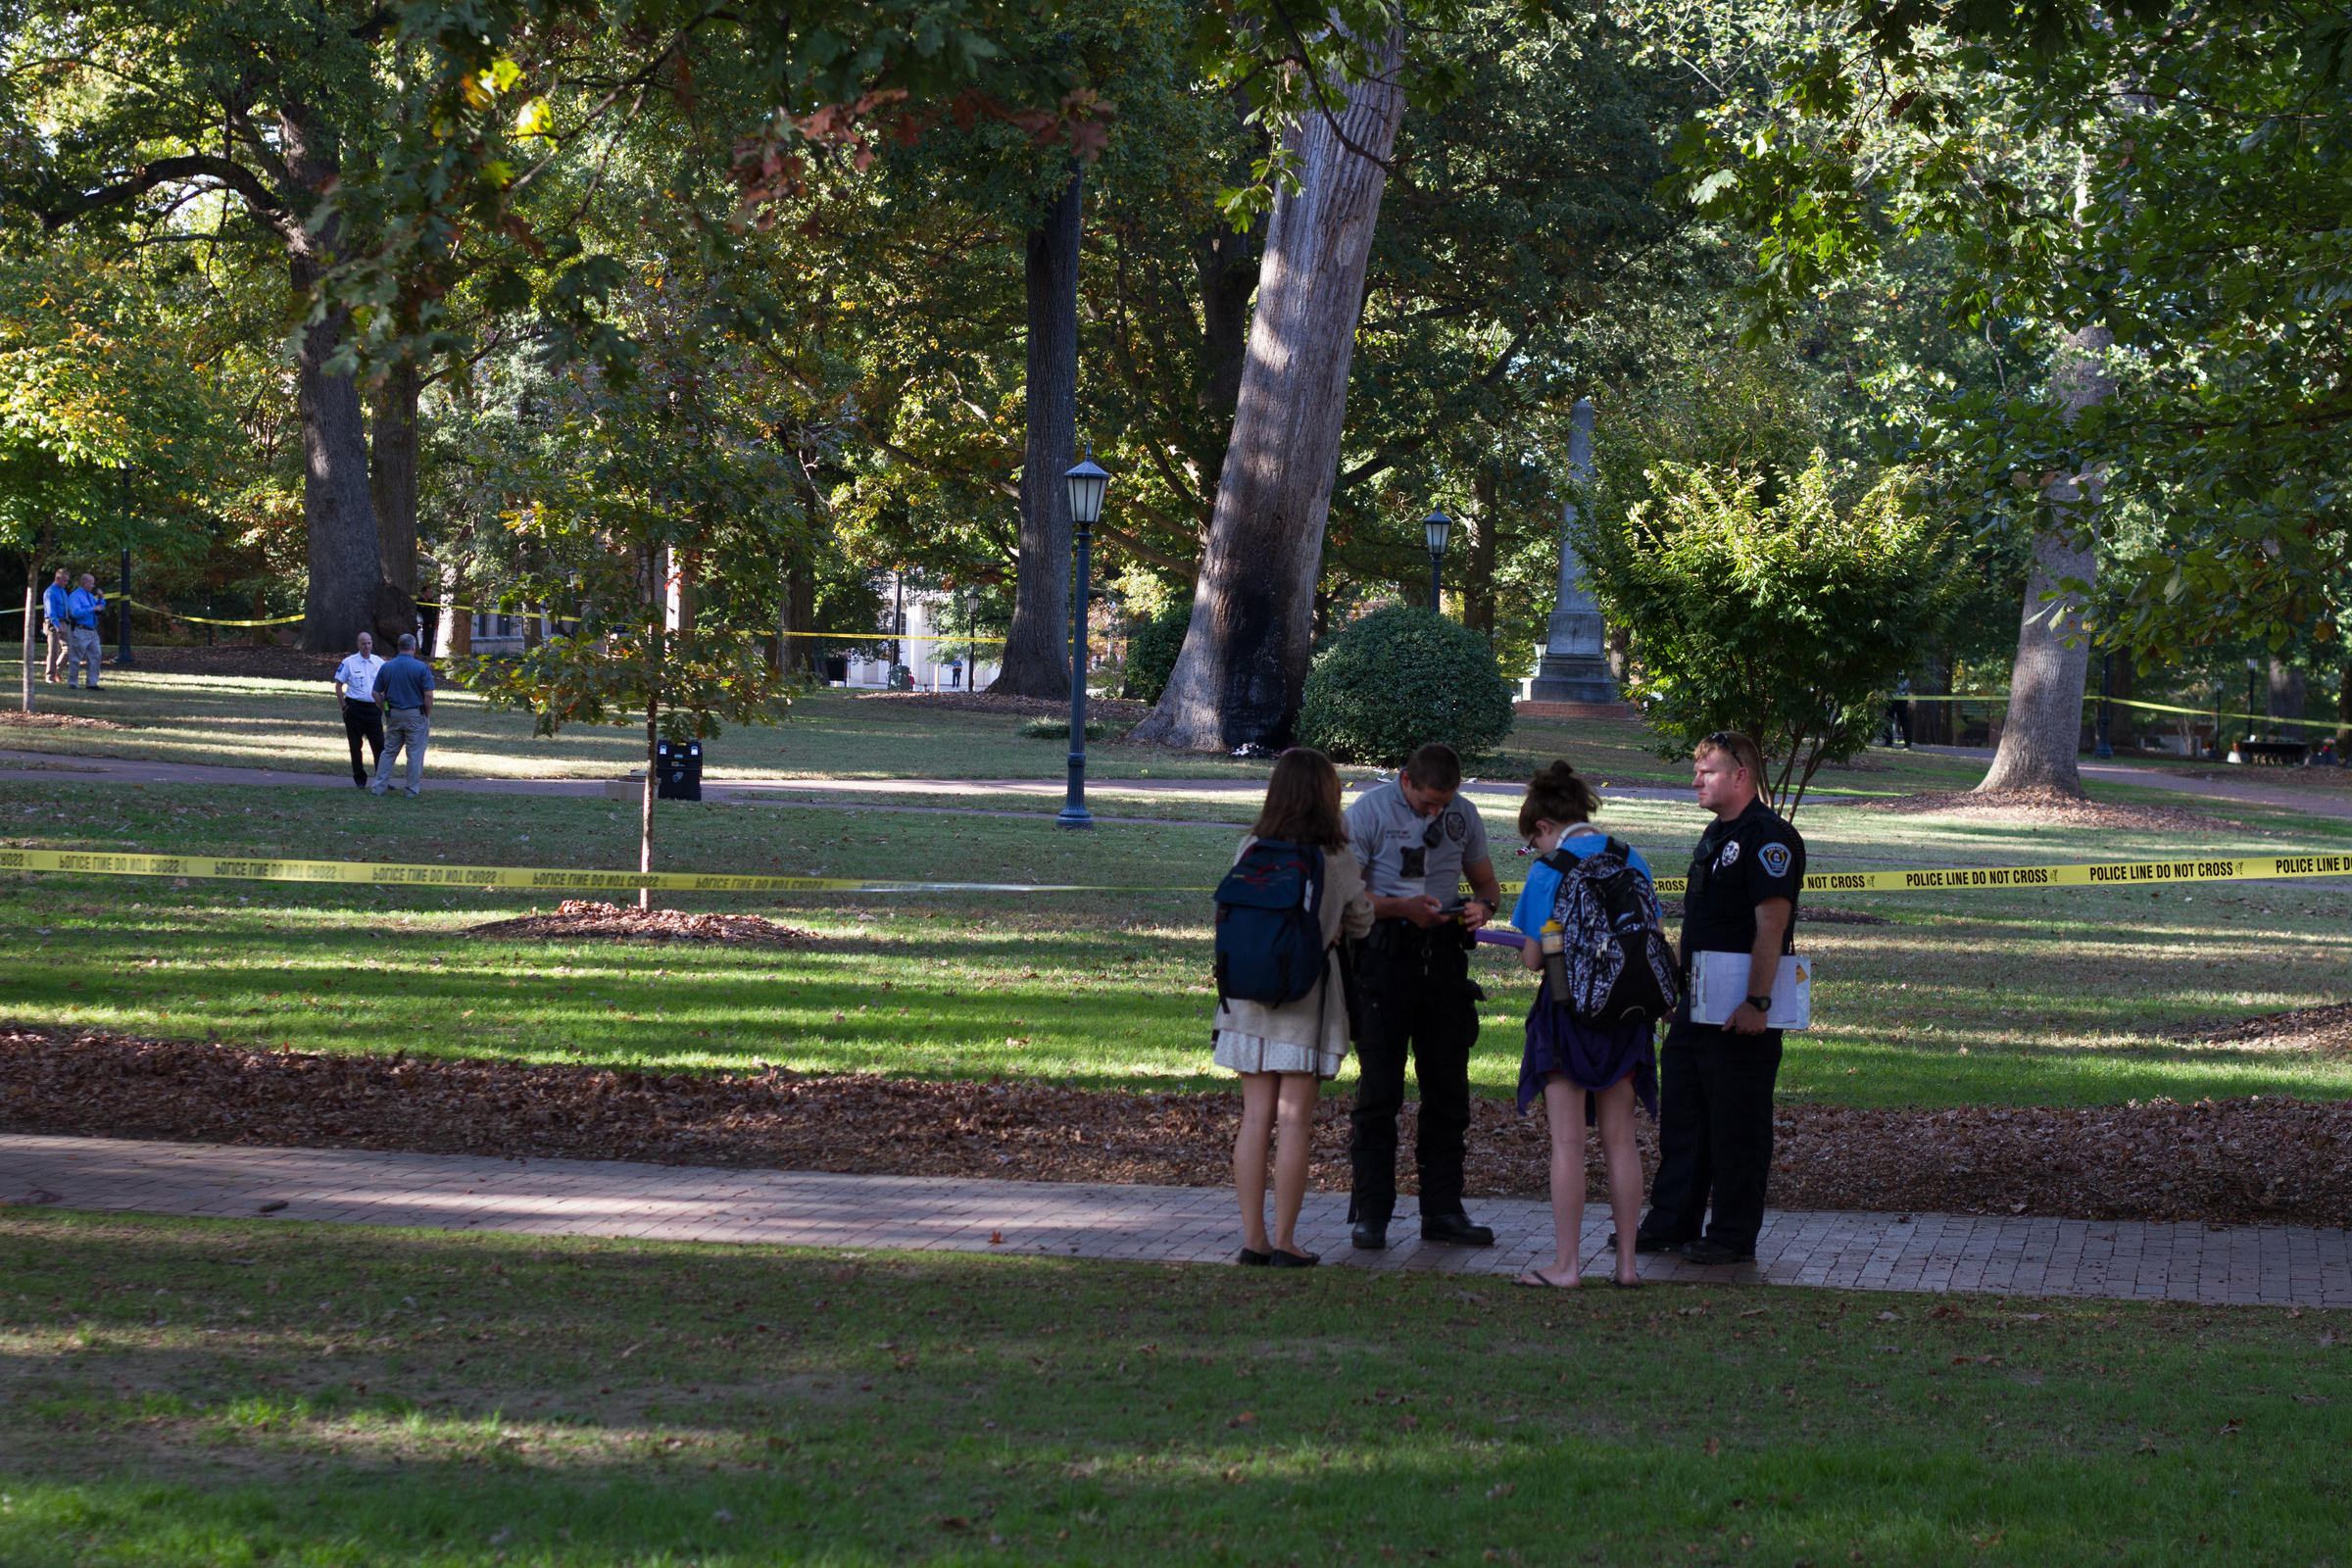 Device detonates at well-known tree on UNC's campus; 1 hurt